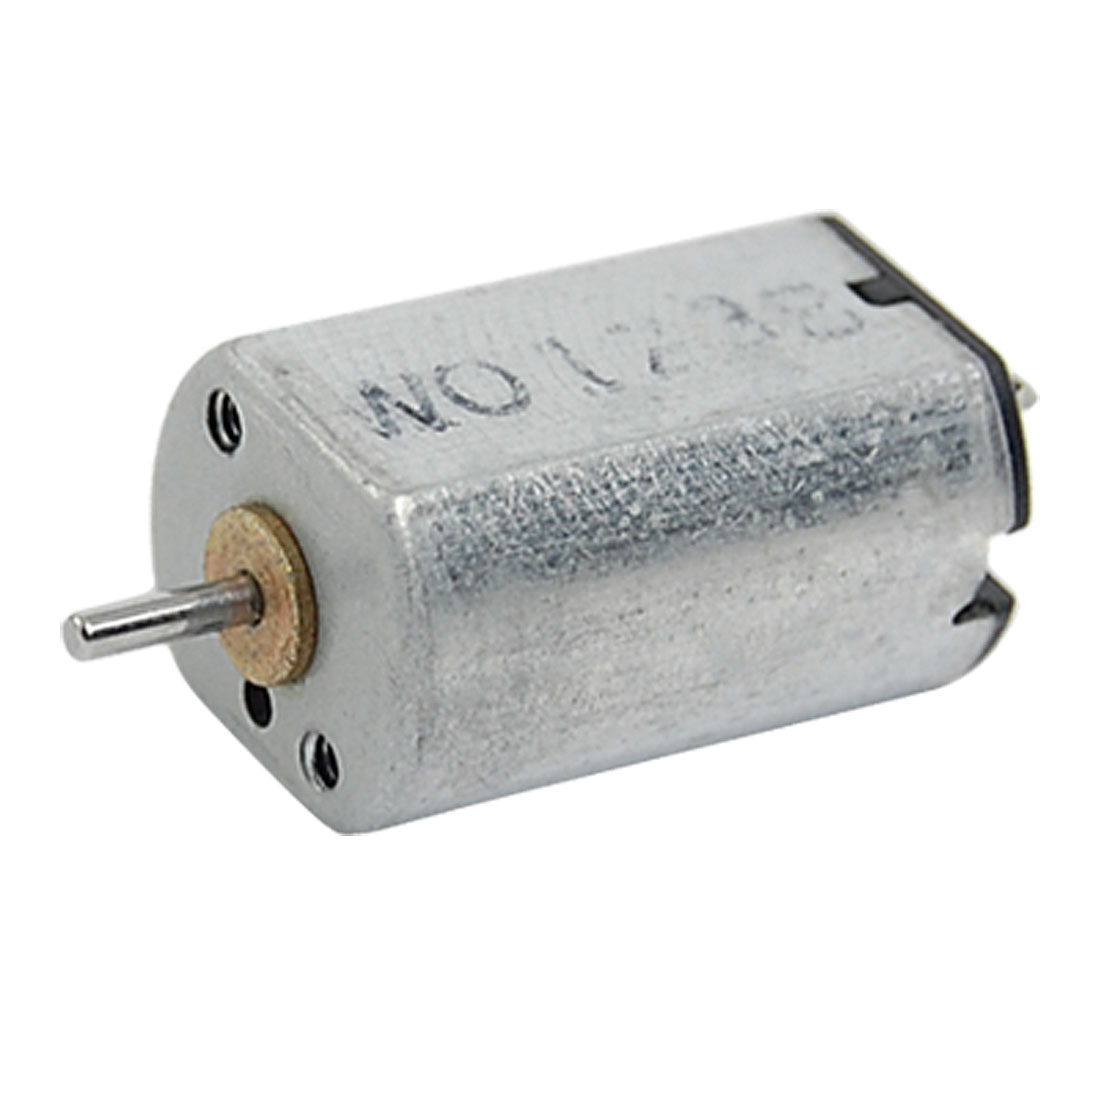 Replacement-3V-6000RPM-0-08A-DC-Mini-Electric-Motor-for-DIY-Toys